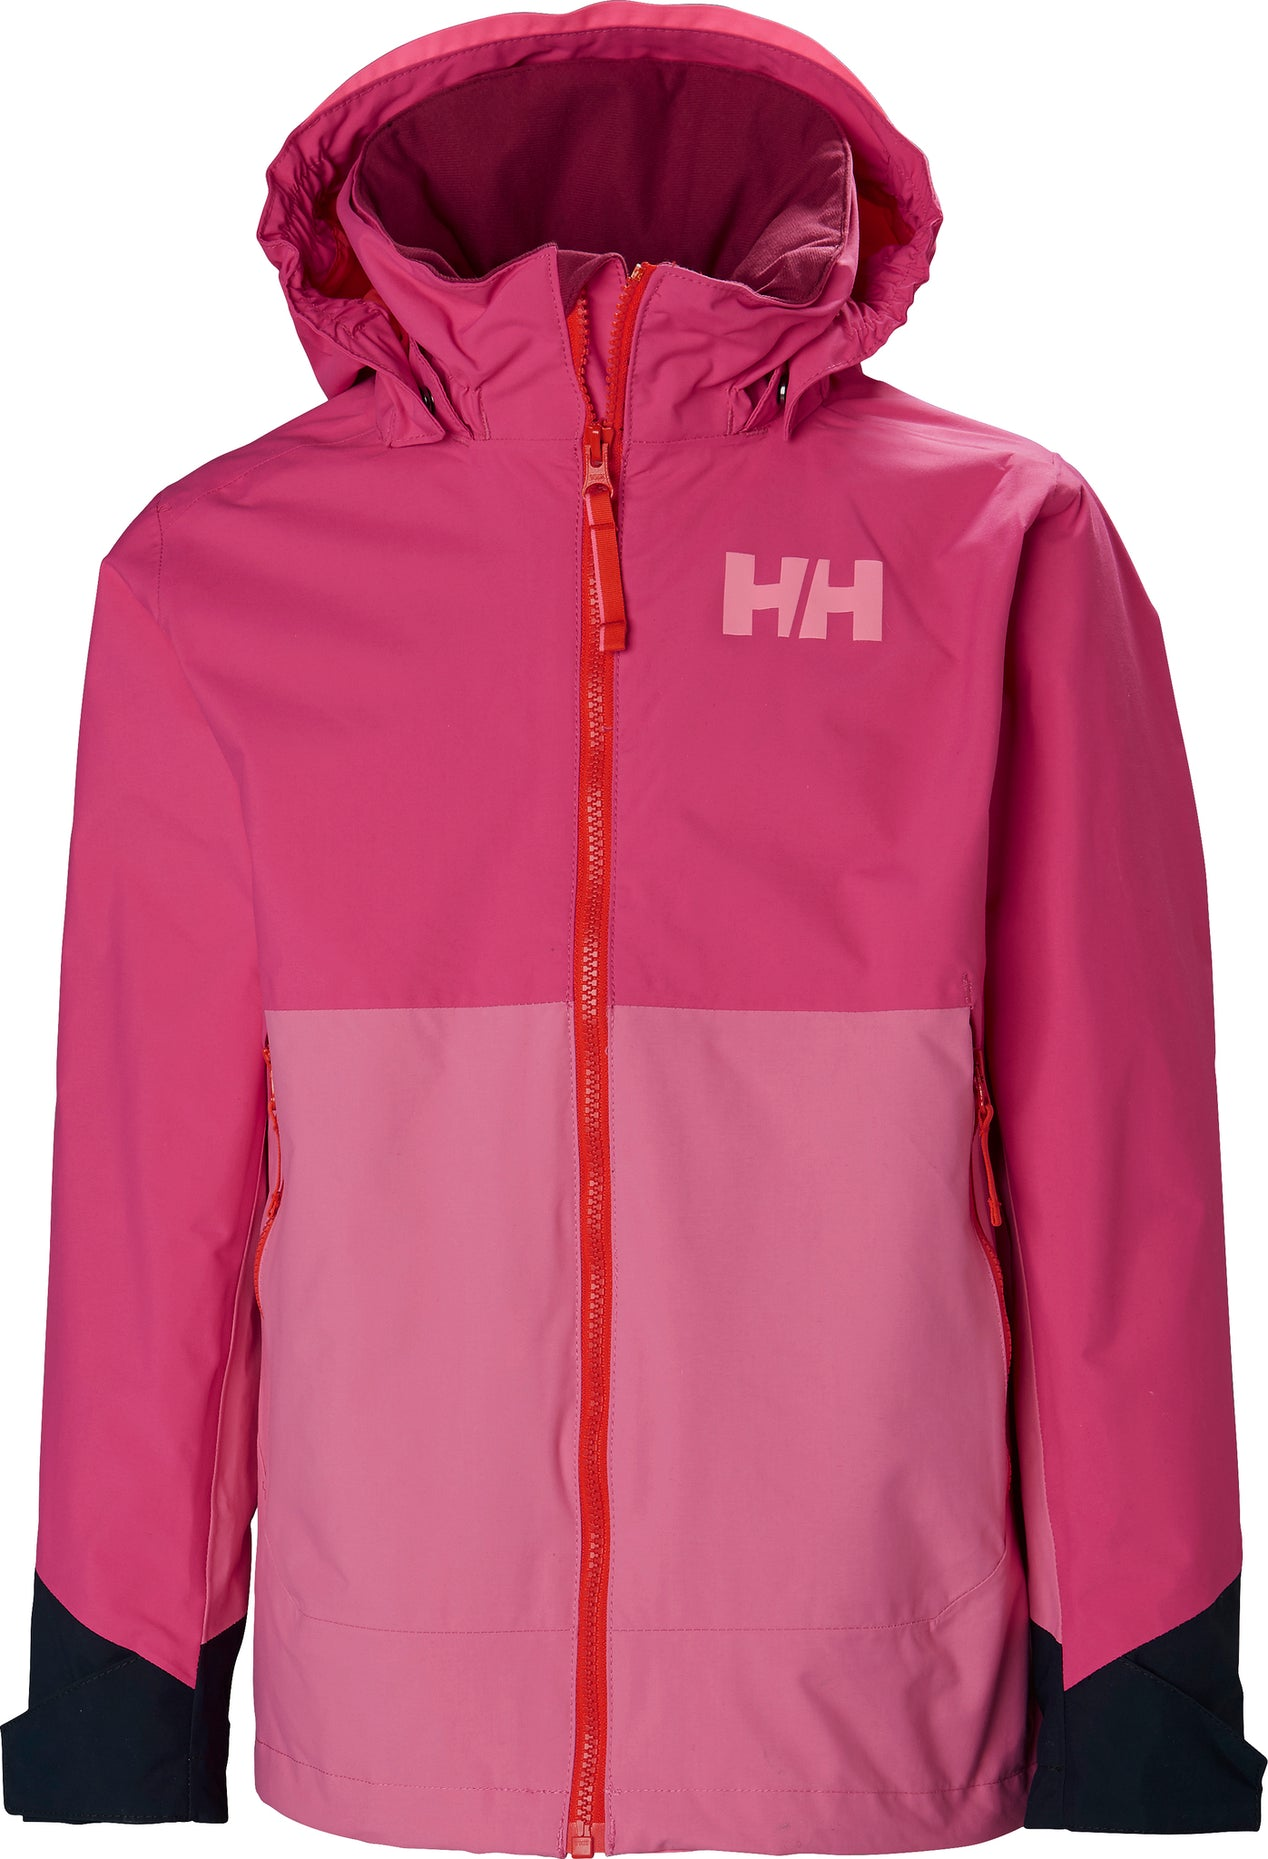 uk store entire collection entire collection Helly Hansen Ascent Jacket - Junior